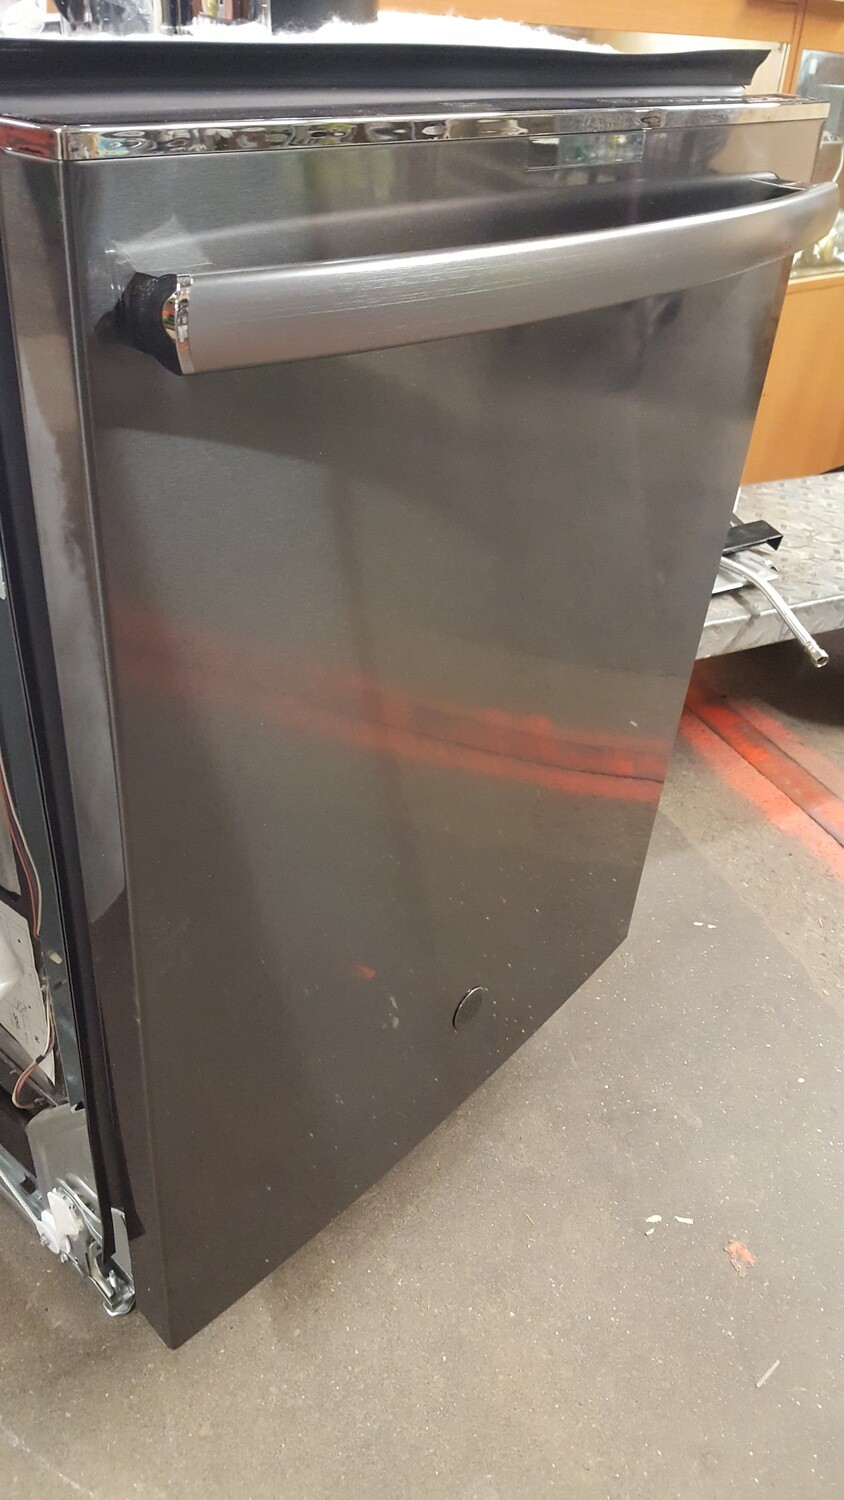 GE Profile Dishwasher, Black stainless with stainless tub, top control